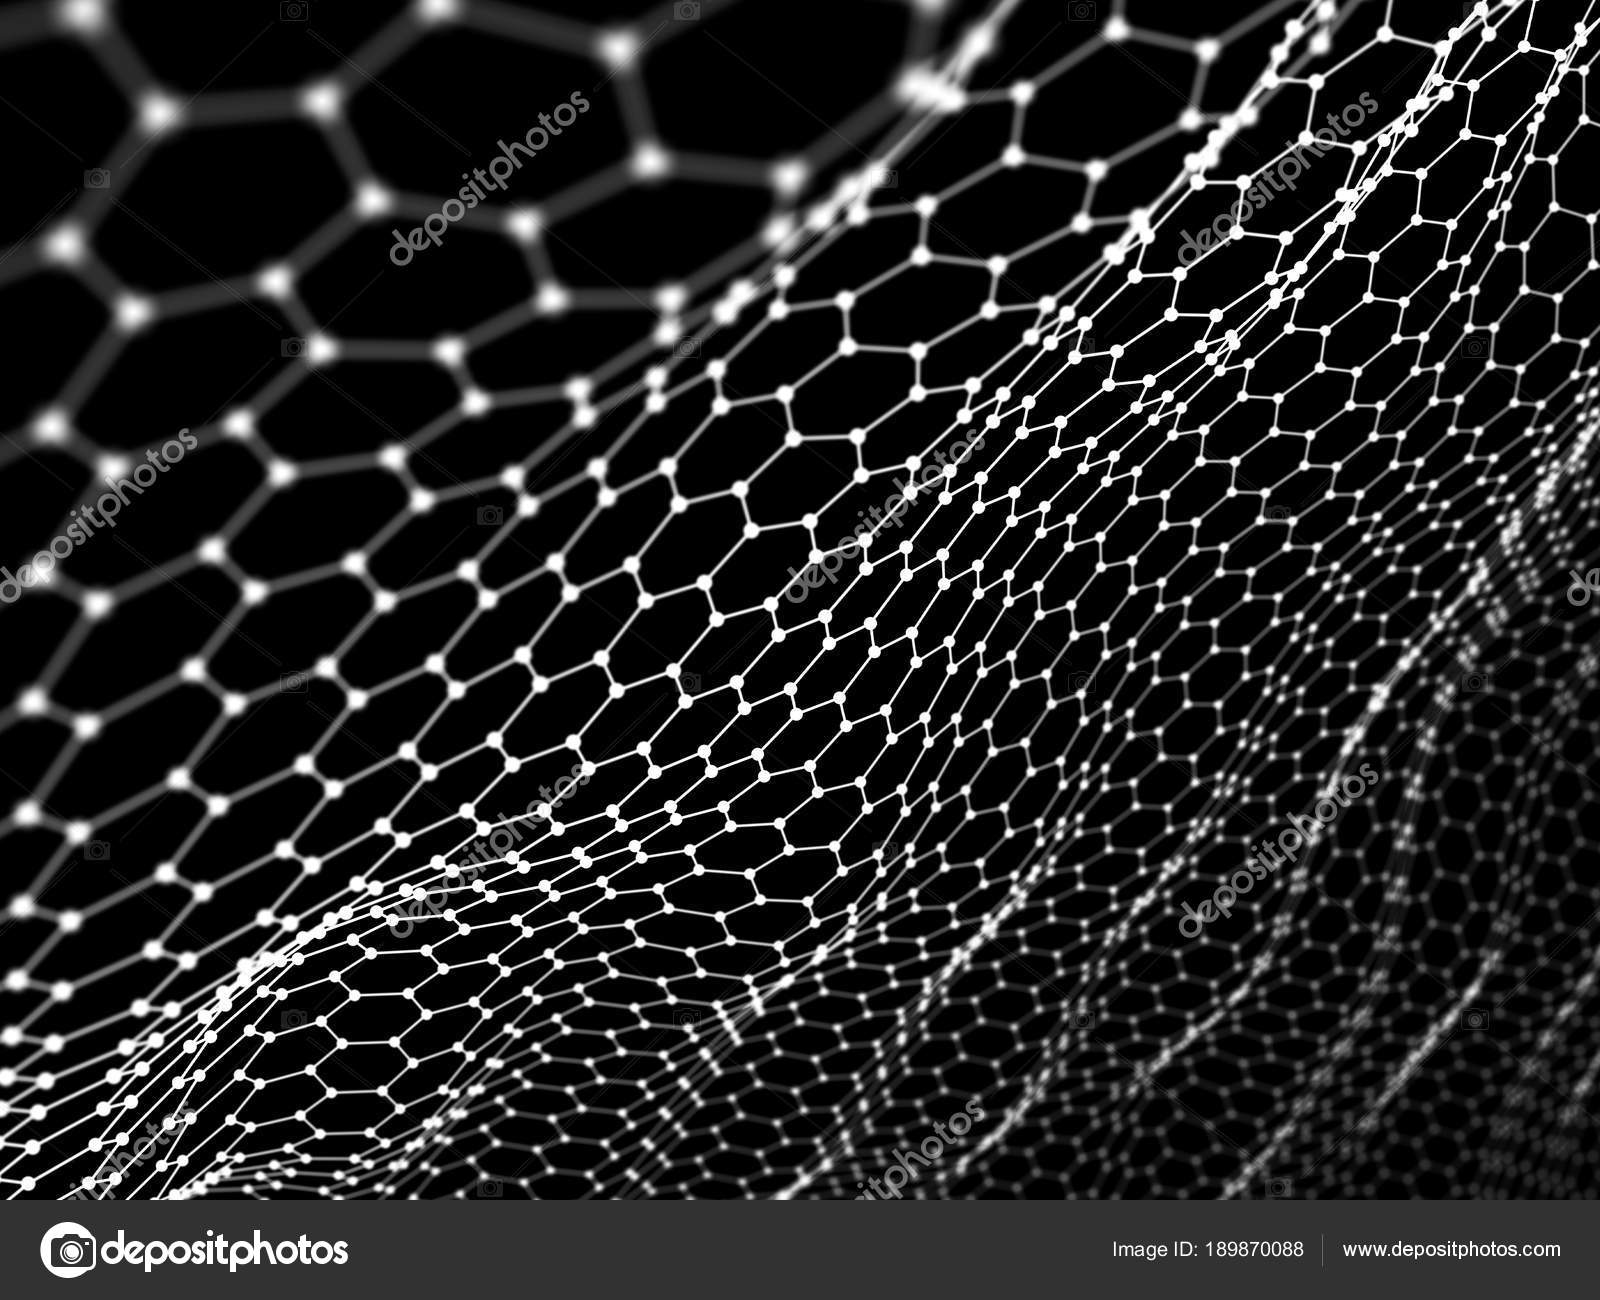 Abstract From Hexagon Wire Surface Background Technology Concept Noise Grid Structure Photo By Anastad